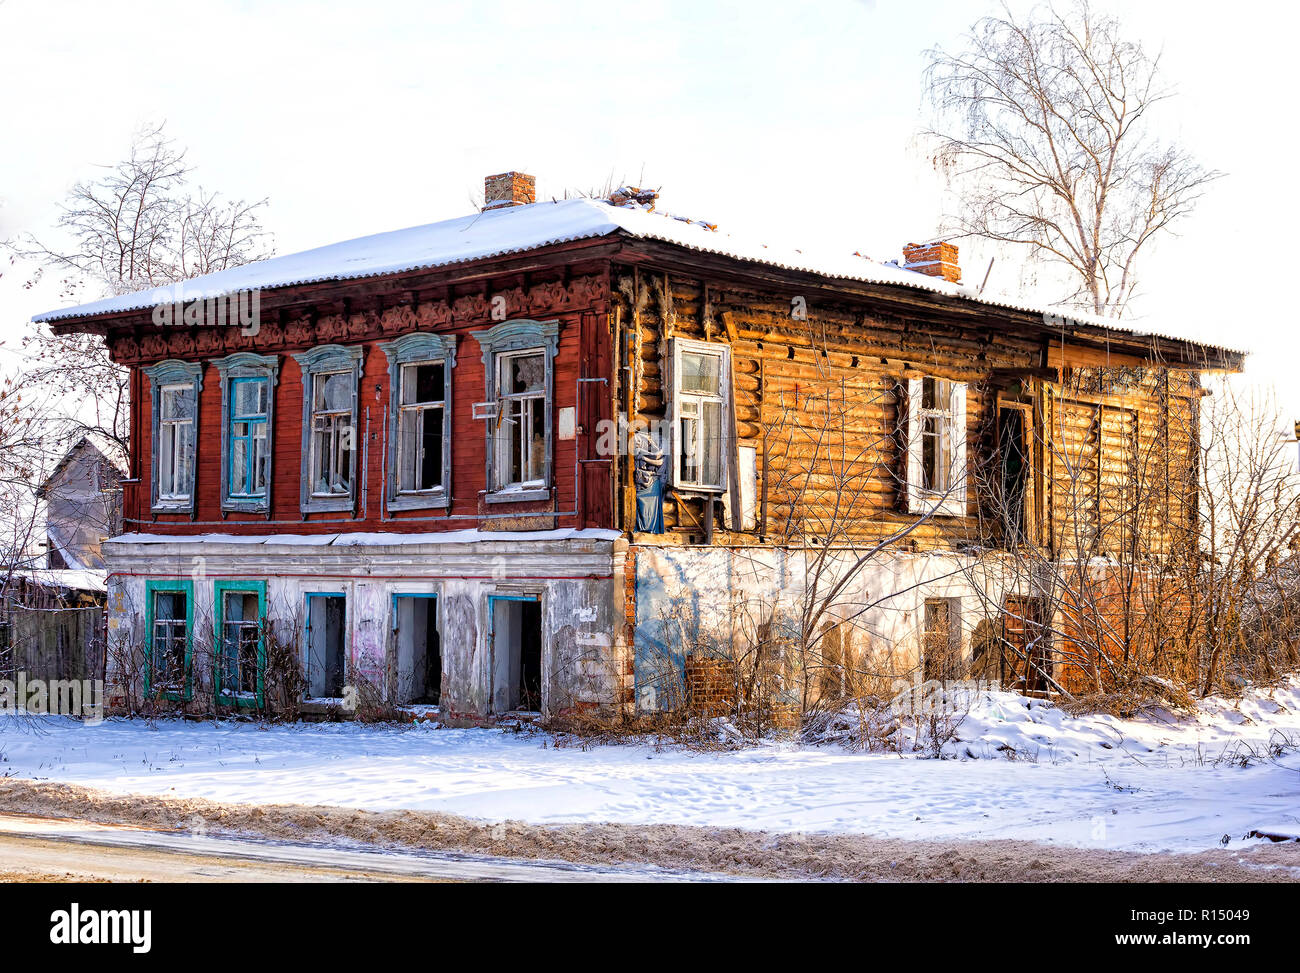 the broken Old merchant house in Russia - Stock Image